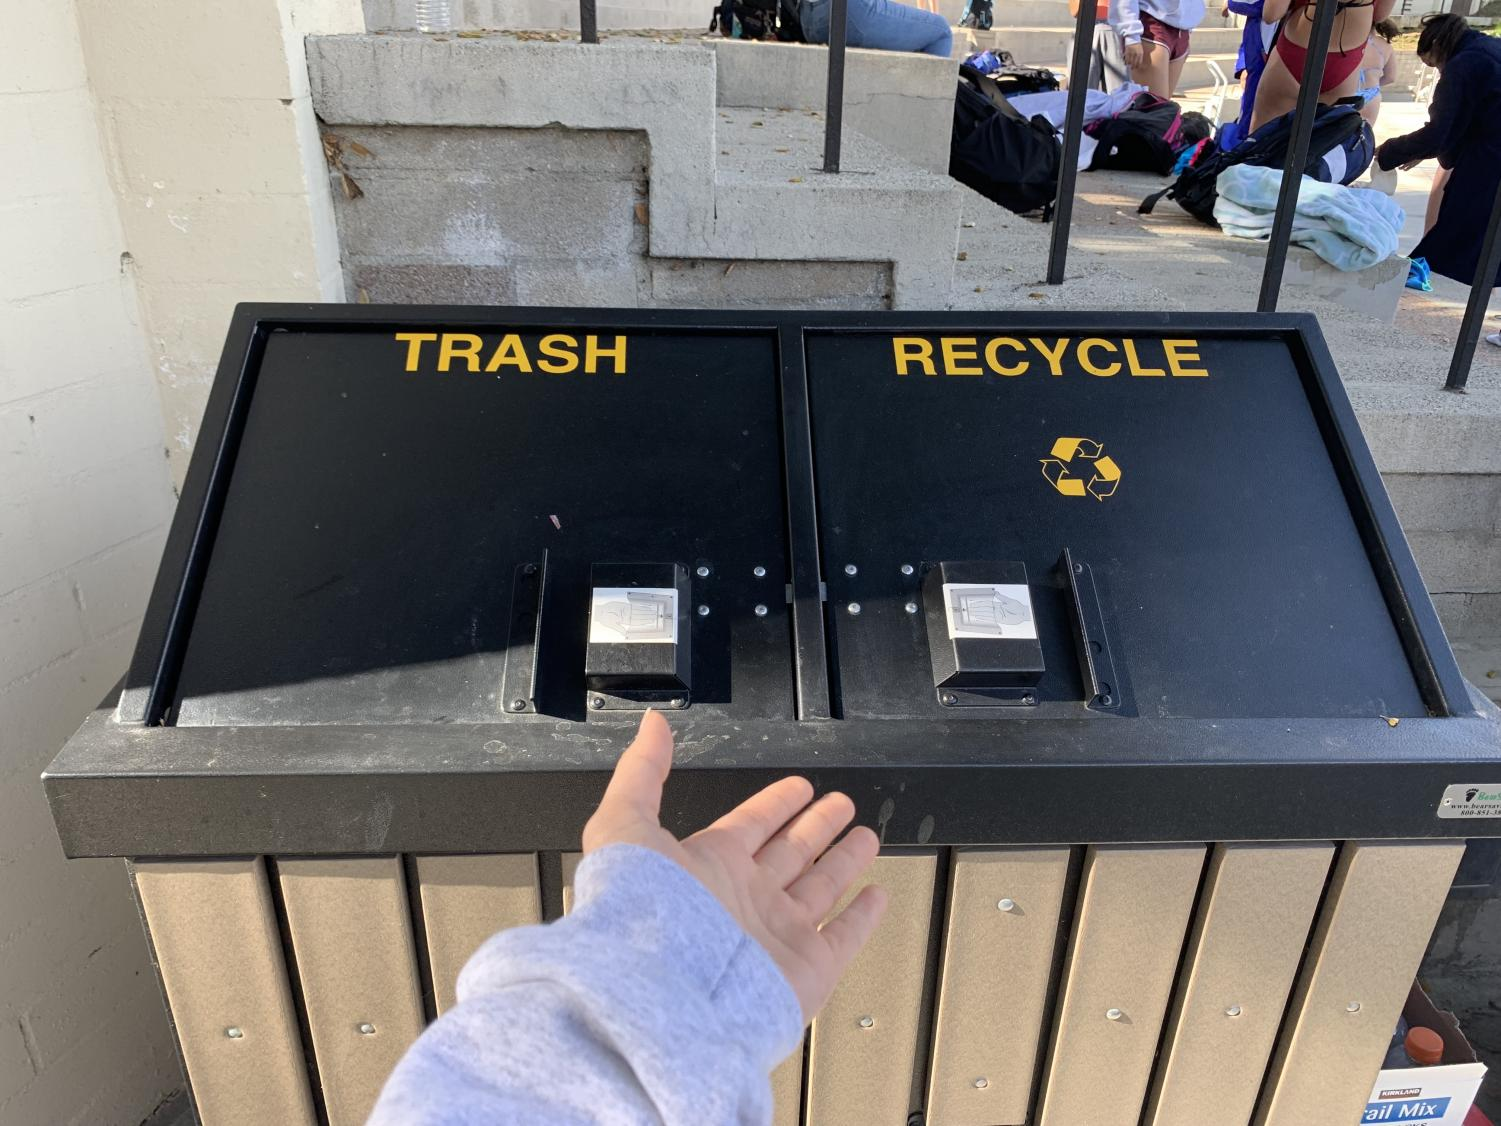 A Webbie decides to recycle her trash instead of throwing it away.